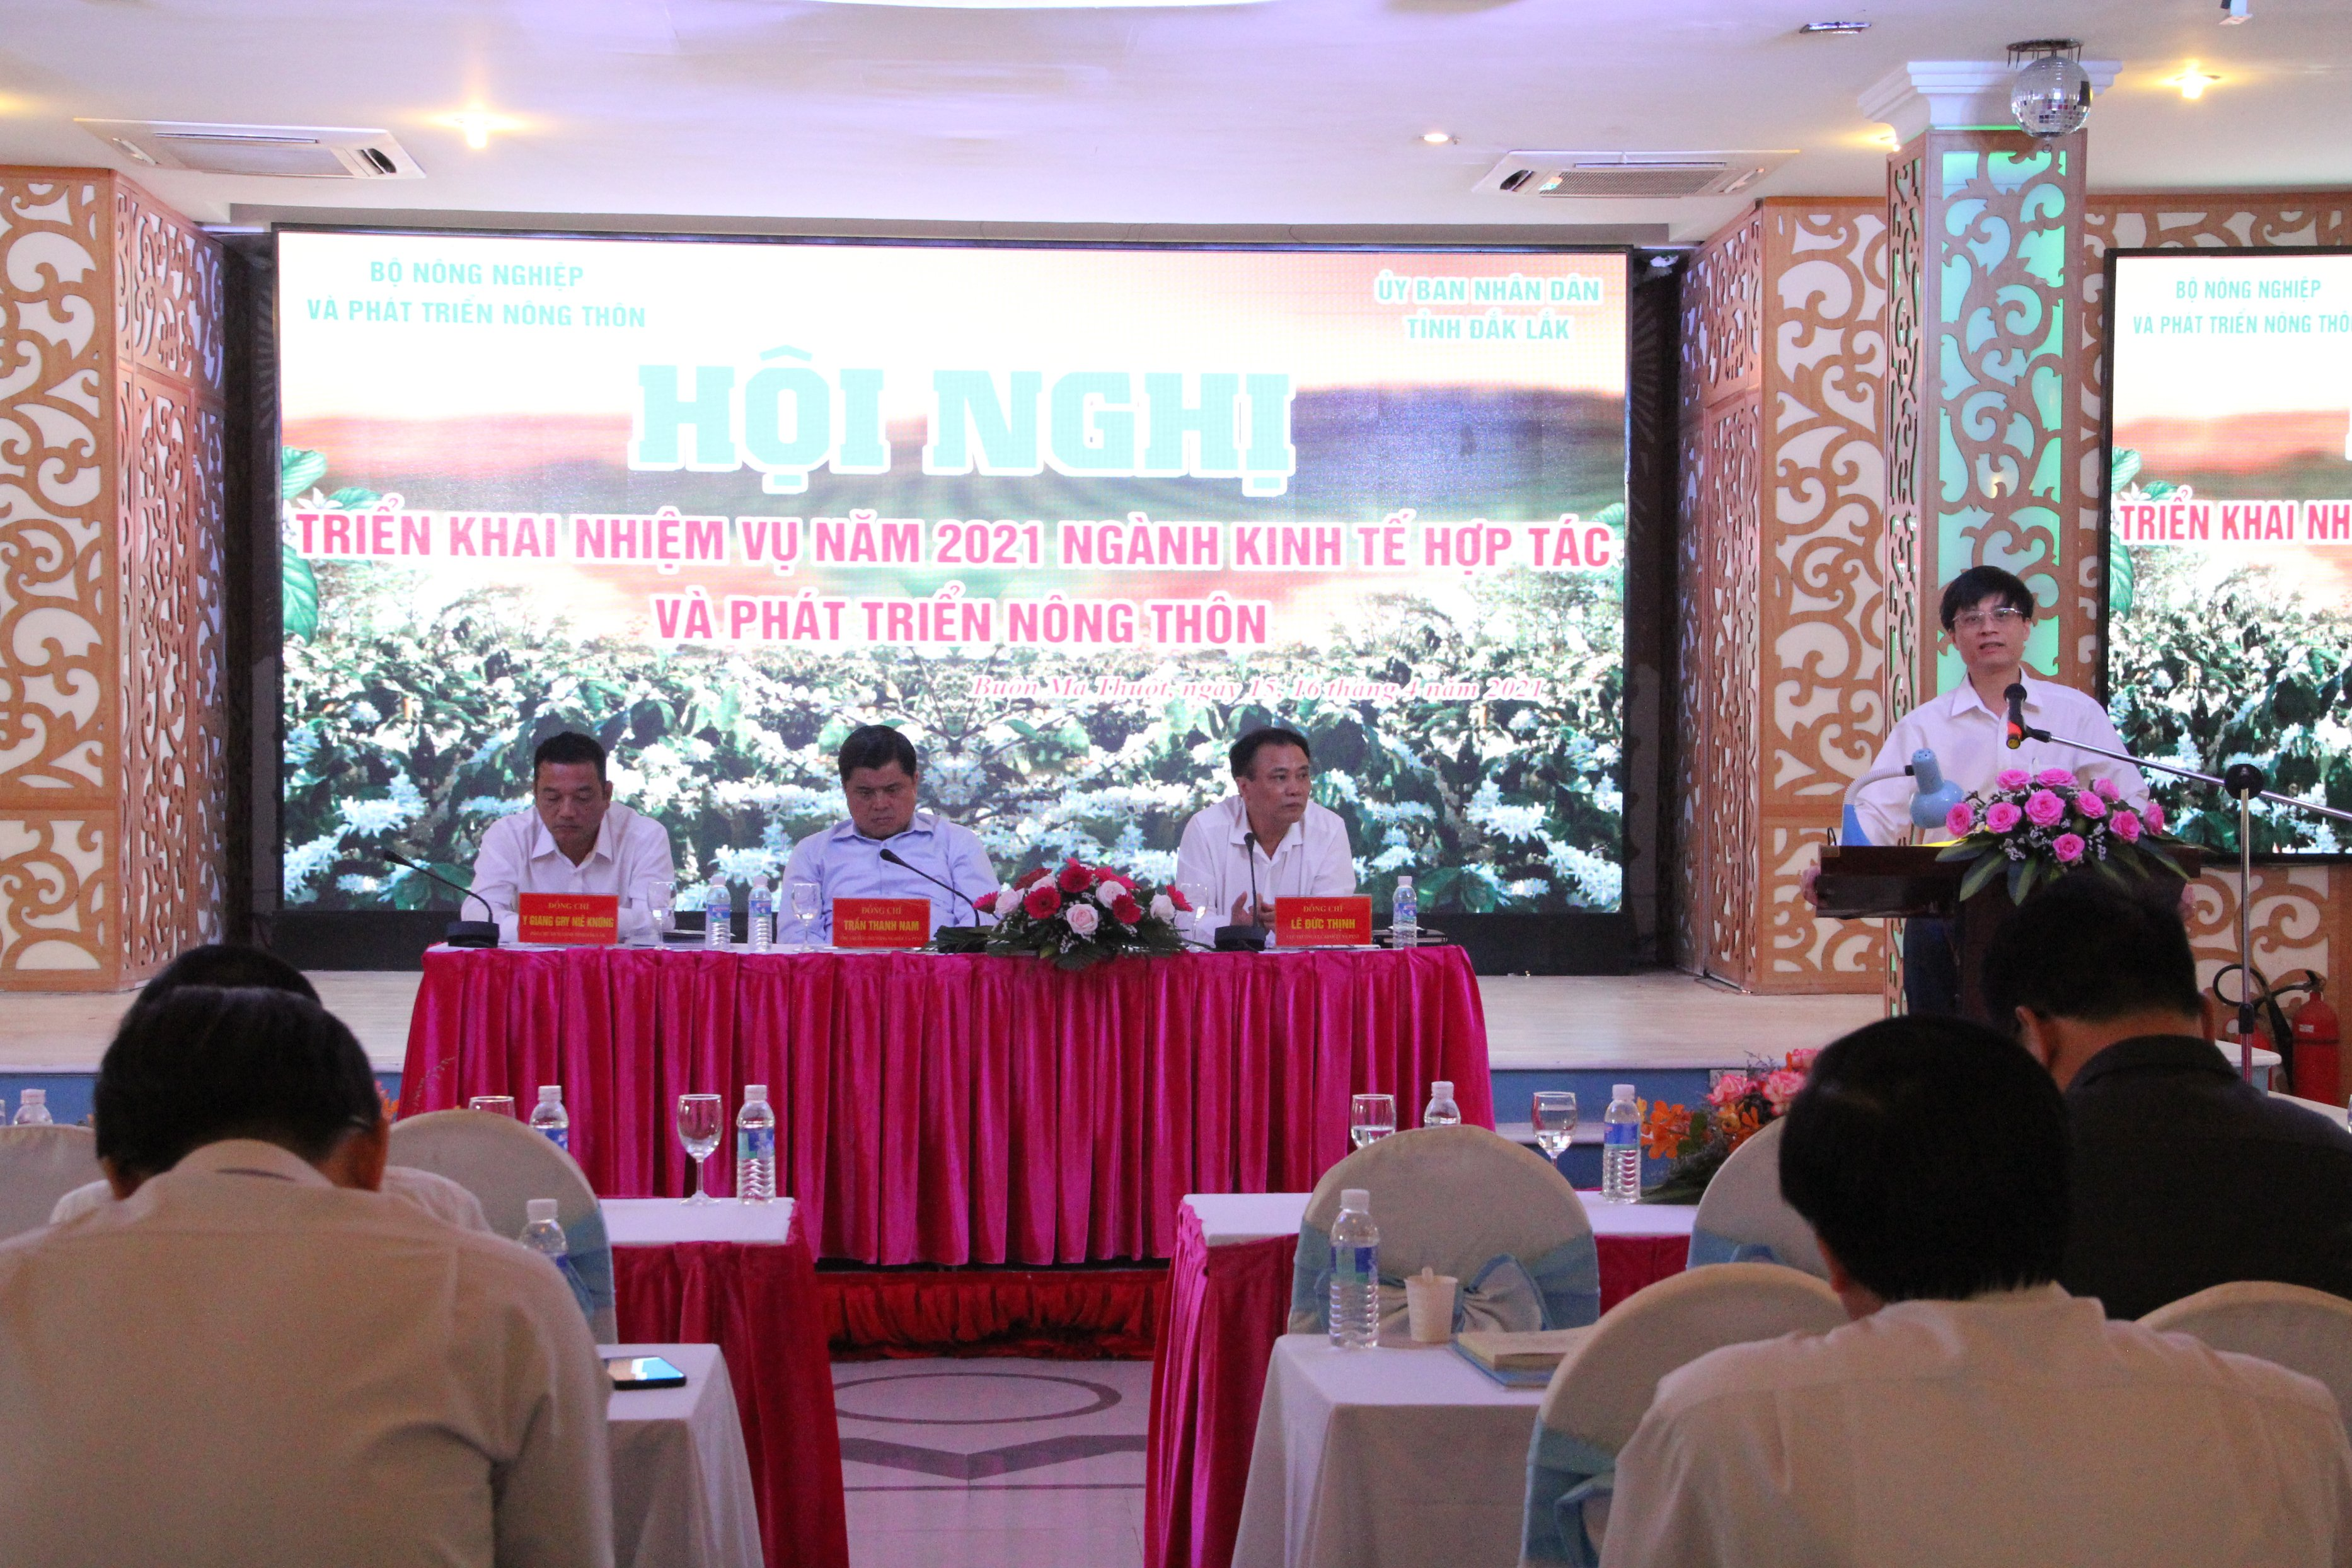 Agricultural cooperatives need to link up and innovate to develop